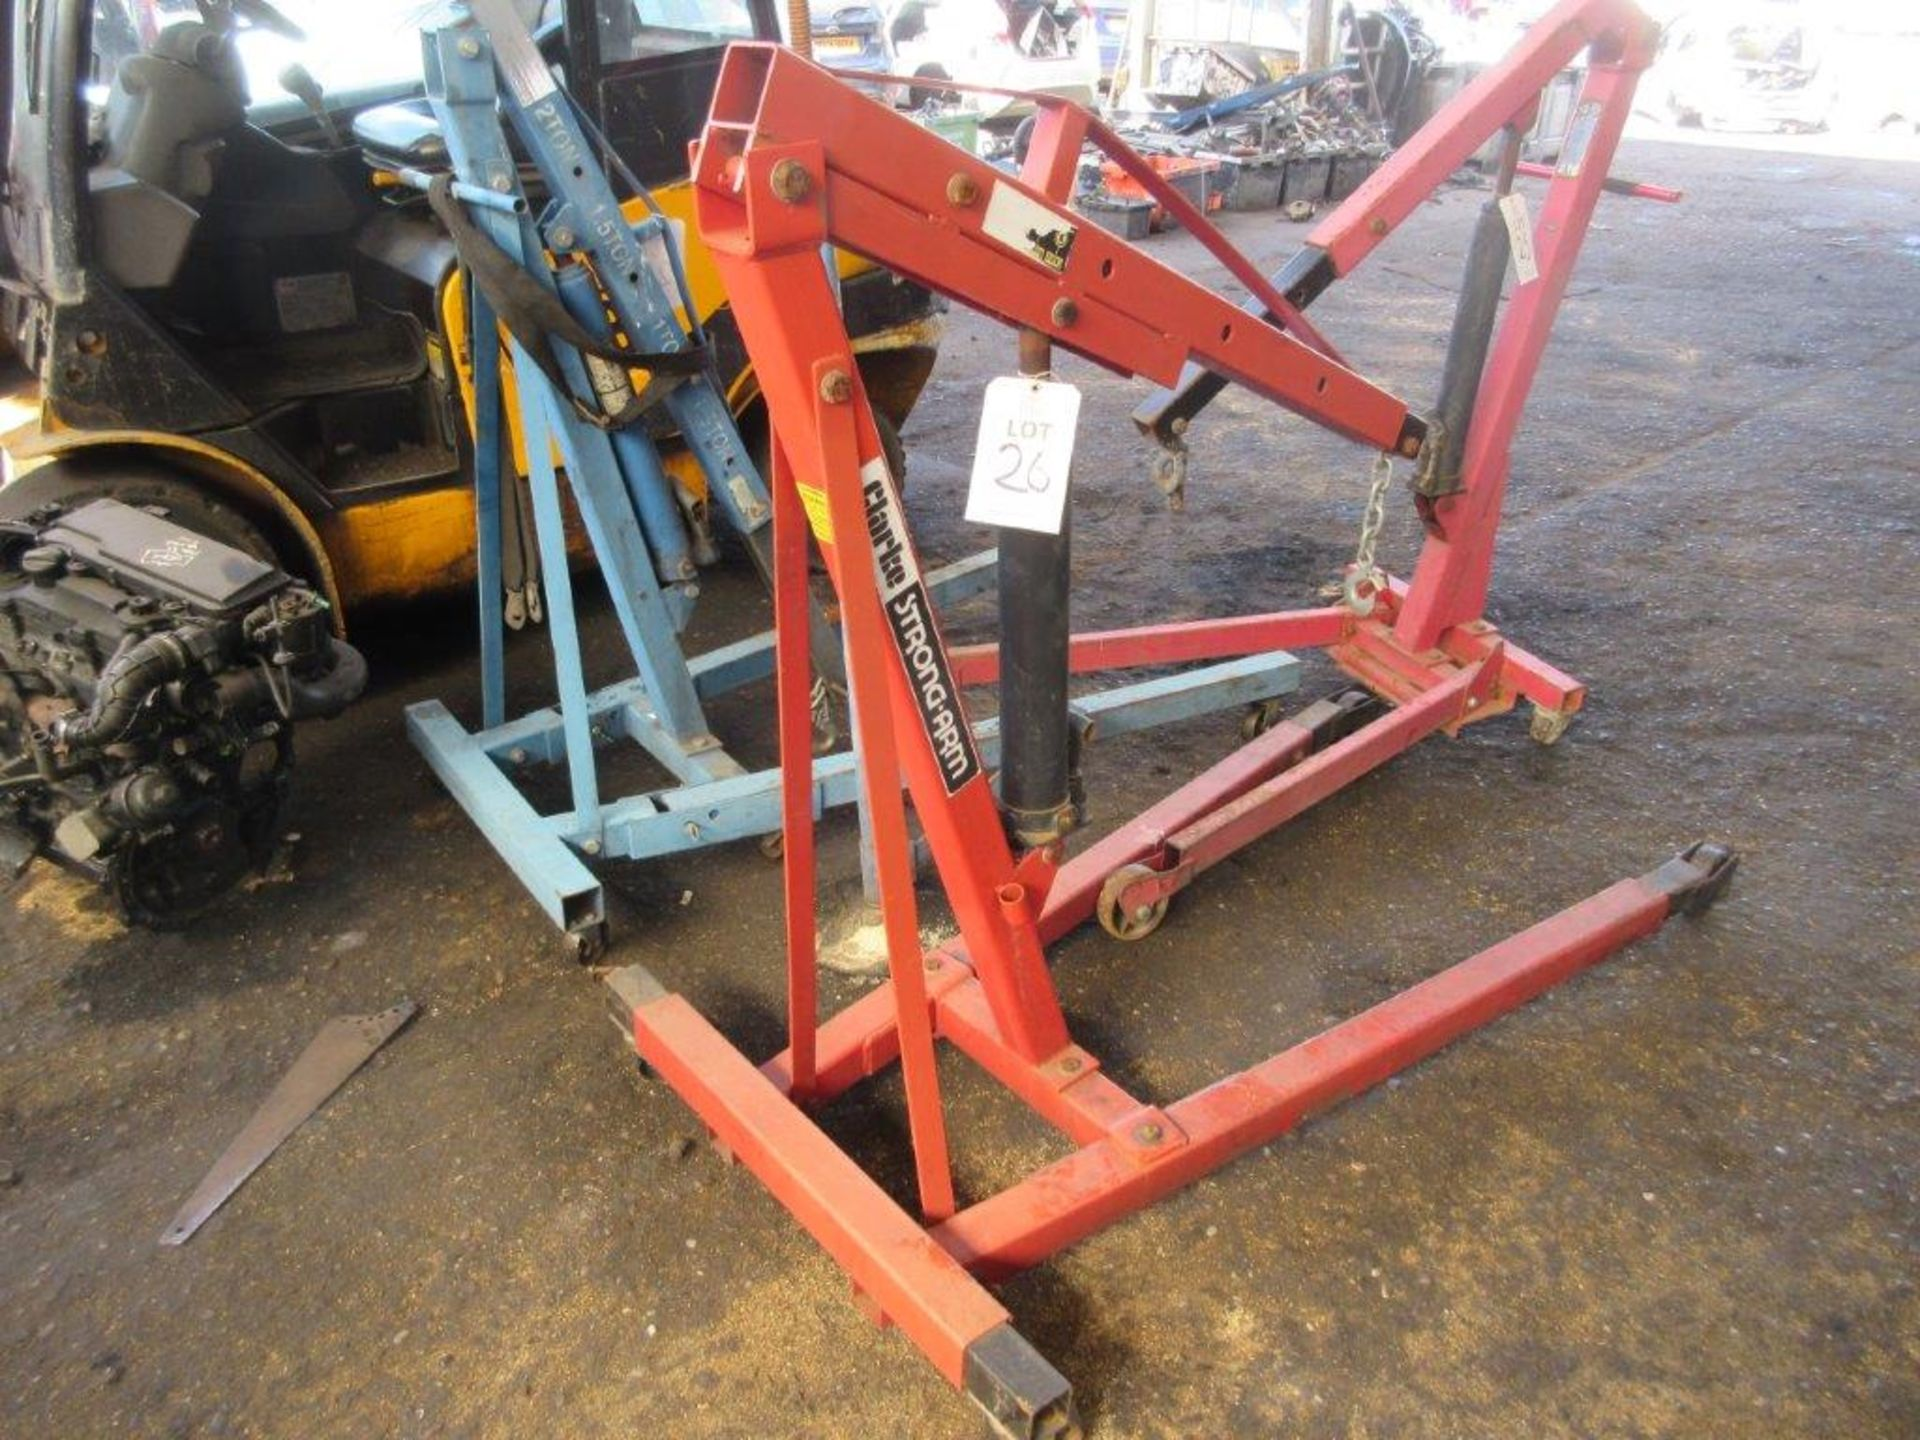 Lot 26 - Clarke Strong-Arm hydraulic engine hoist, (2014), capacity: 1000Kgs. Note this lot has no record